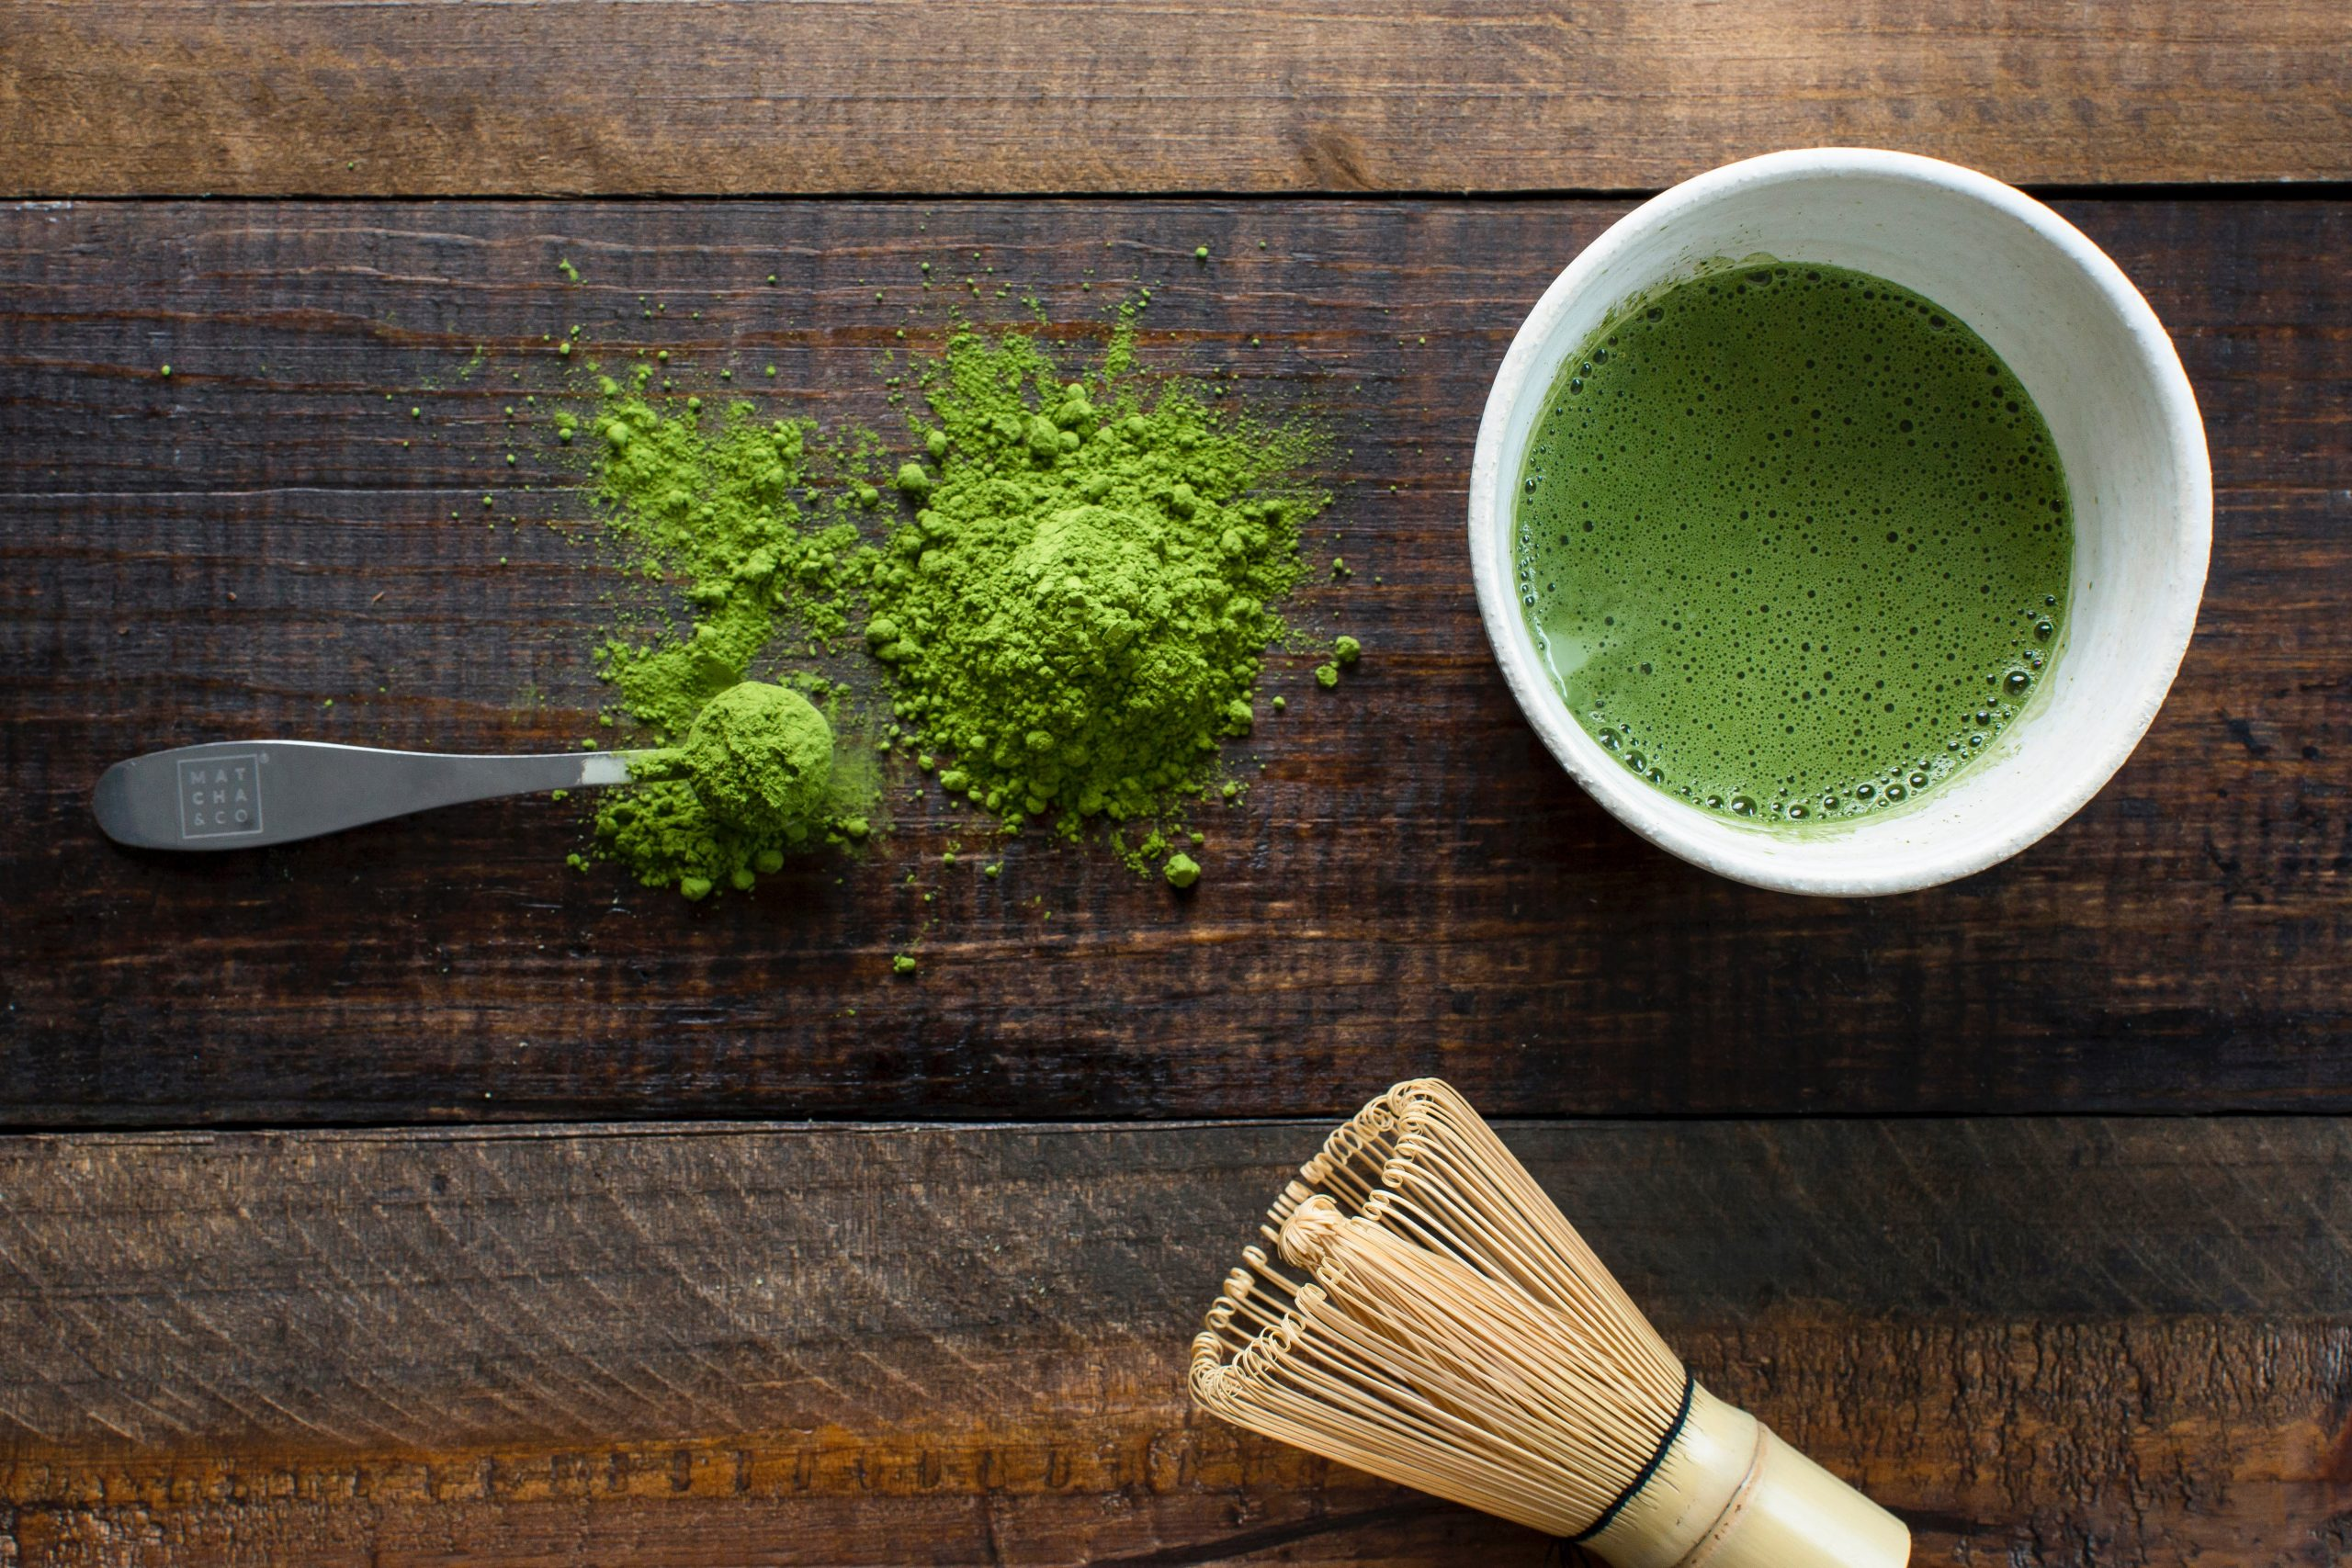 green tea fat burner in a cup on top a wooden surface